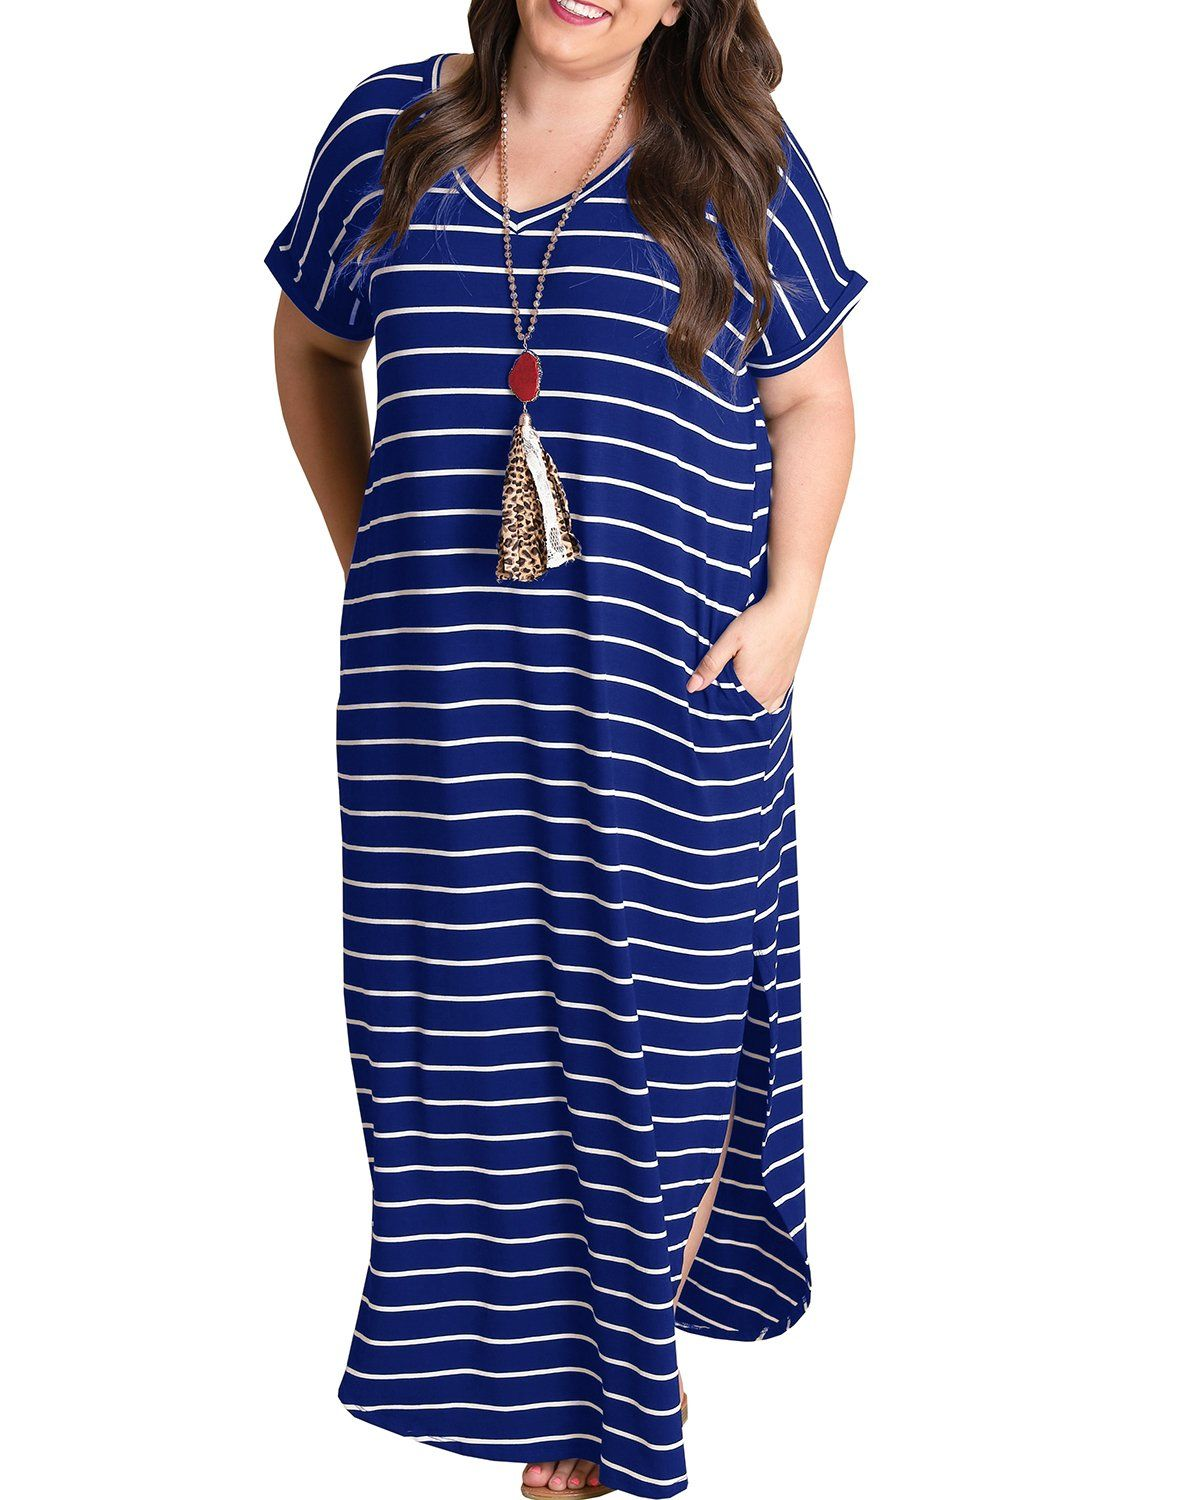 ee160822d2d9a Maternity Fashion - casual maternity dresses   Rotita Women Striped Maxi  Dress Plus Size Short Sleeve Loose V Neck Maxi Dresses with Pockets XLarge  Blue ...